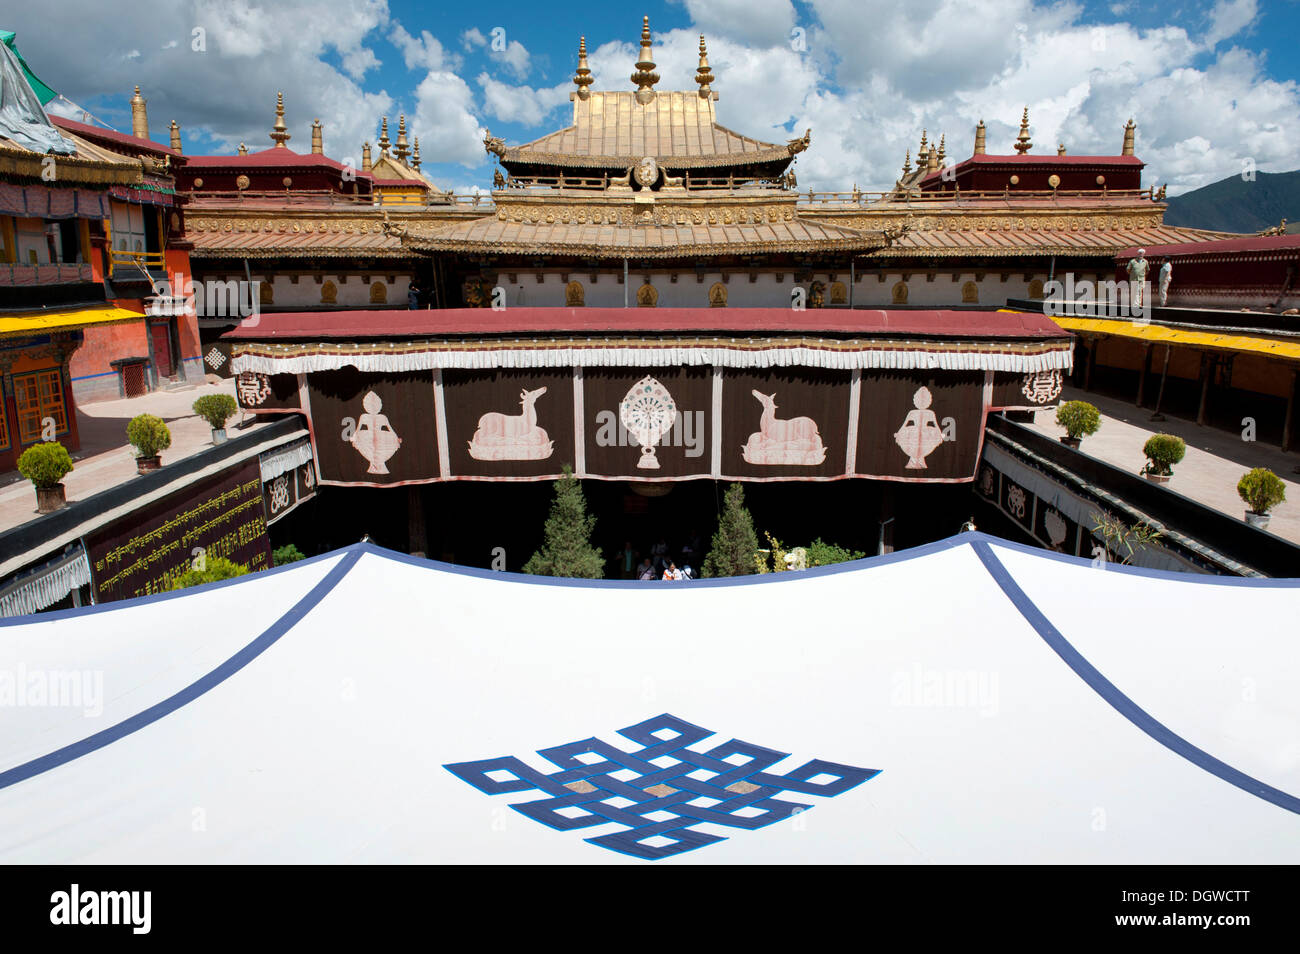 Tibetan Buddhism, tent roof with an endless knot emblem, Jokhang Temple, Lhasa, Ue-Tsang, Central Tibet, Tibet Autonomous Region - Stock Image